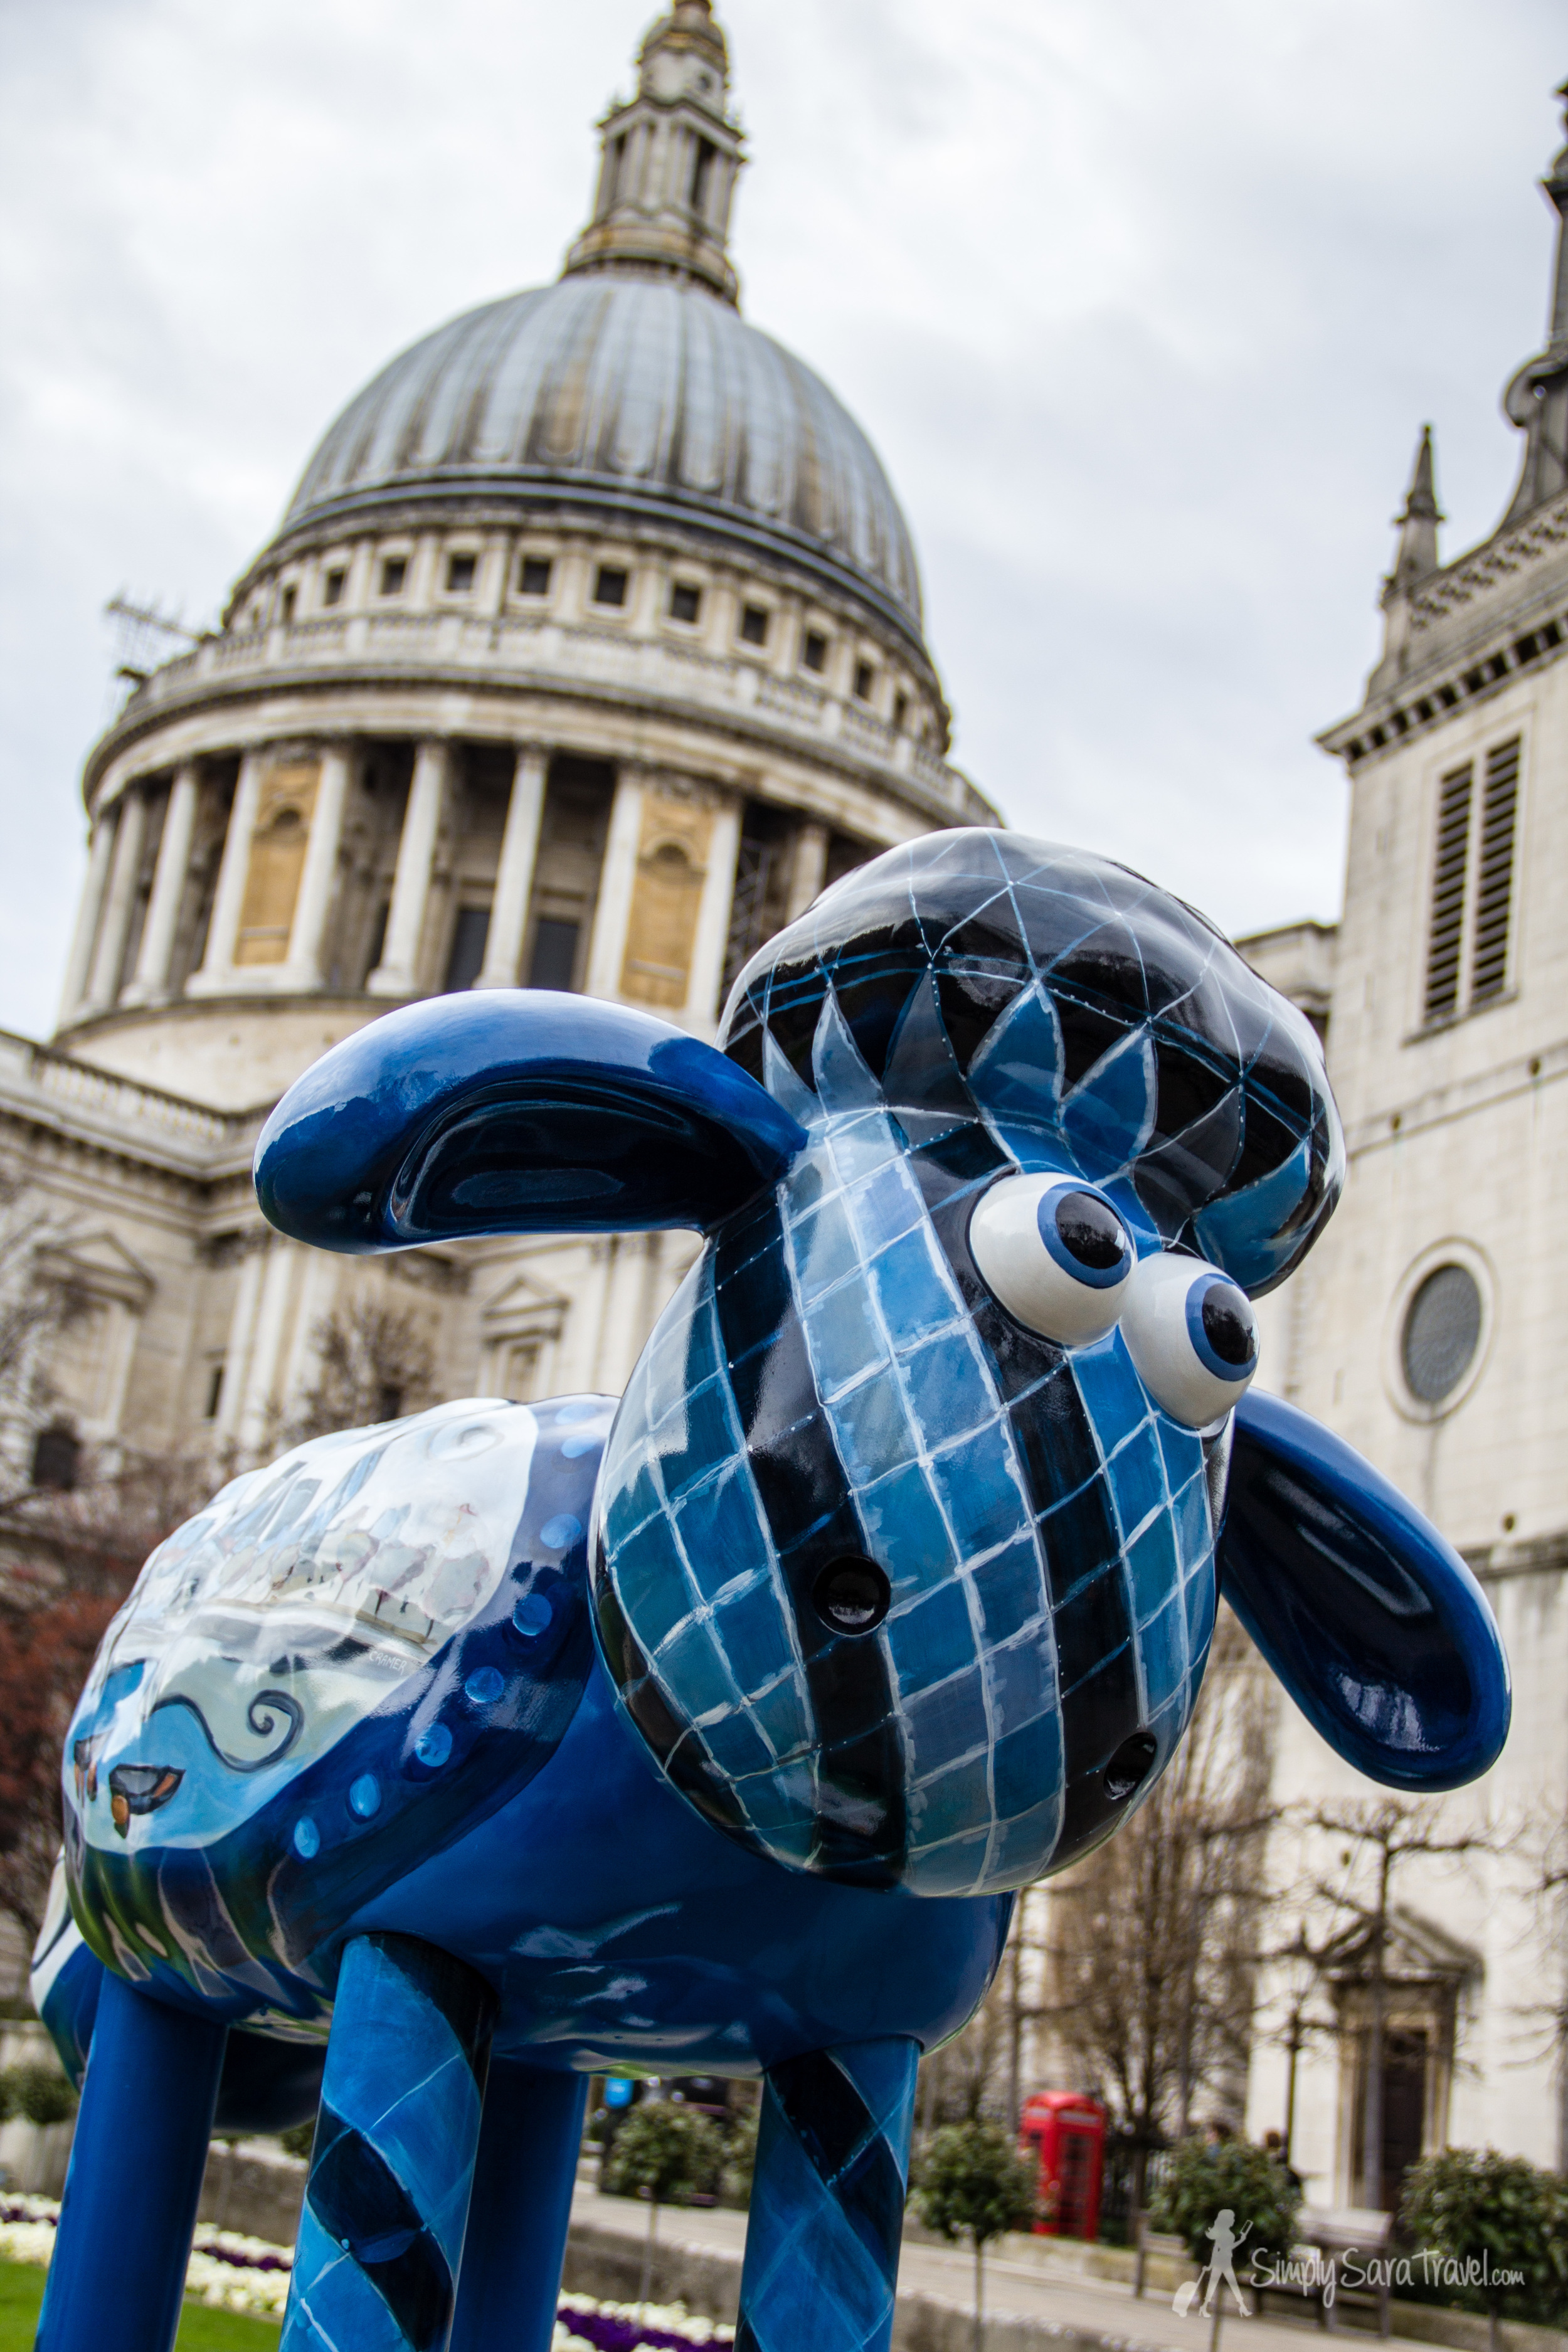 Did I mention Iwas in London during an art exhibit featuring sheep all over the city?! As I've hinted at before,  any city  that has sheep of some sort gets bonus points in my book![Thisexpo moved to Bristol, England where you can see  Shaun the Sheep  until the end of August 2015!]